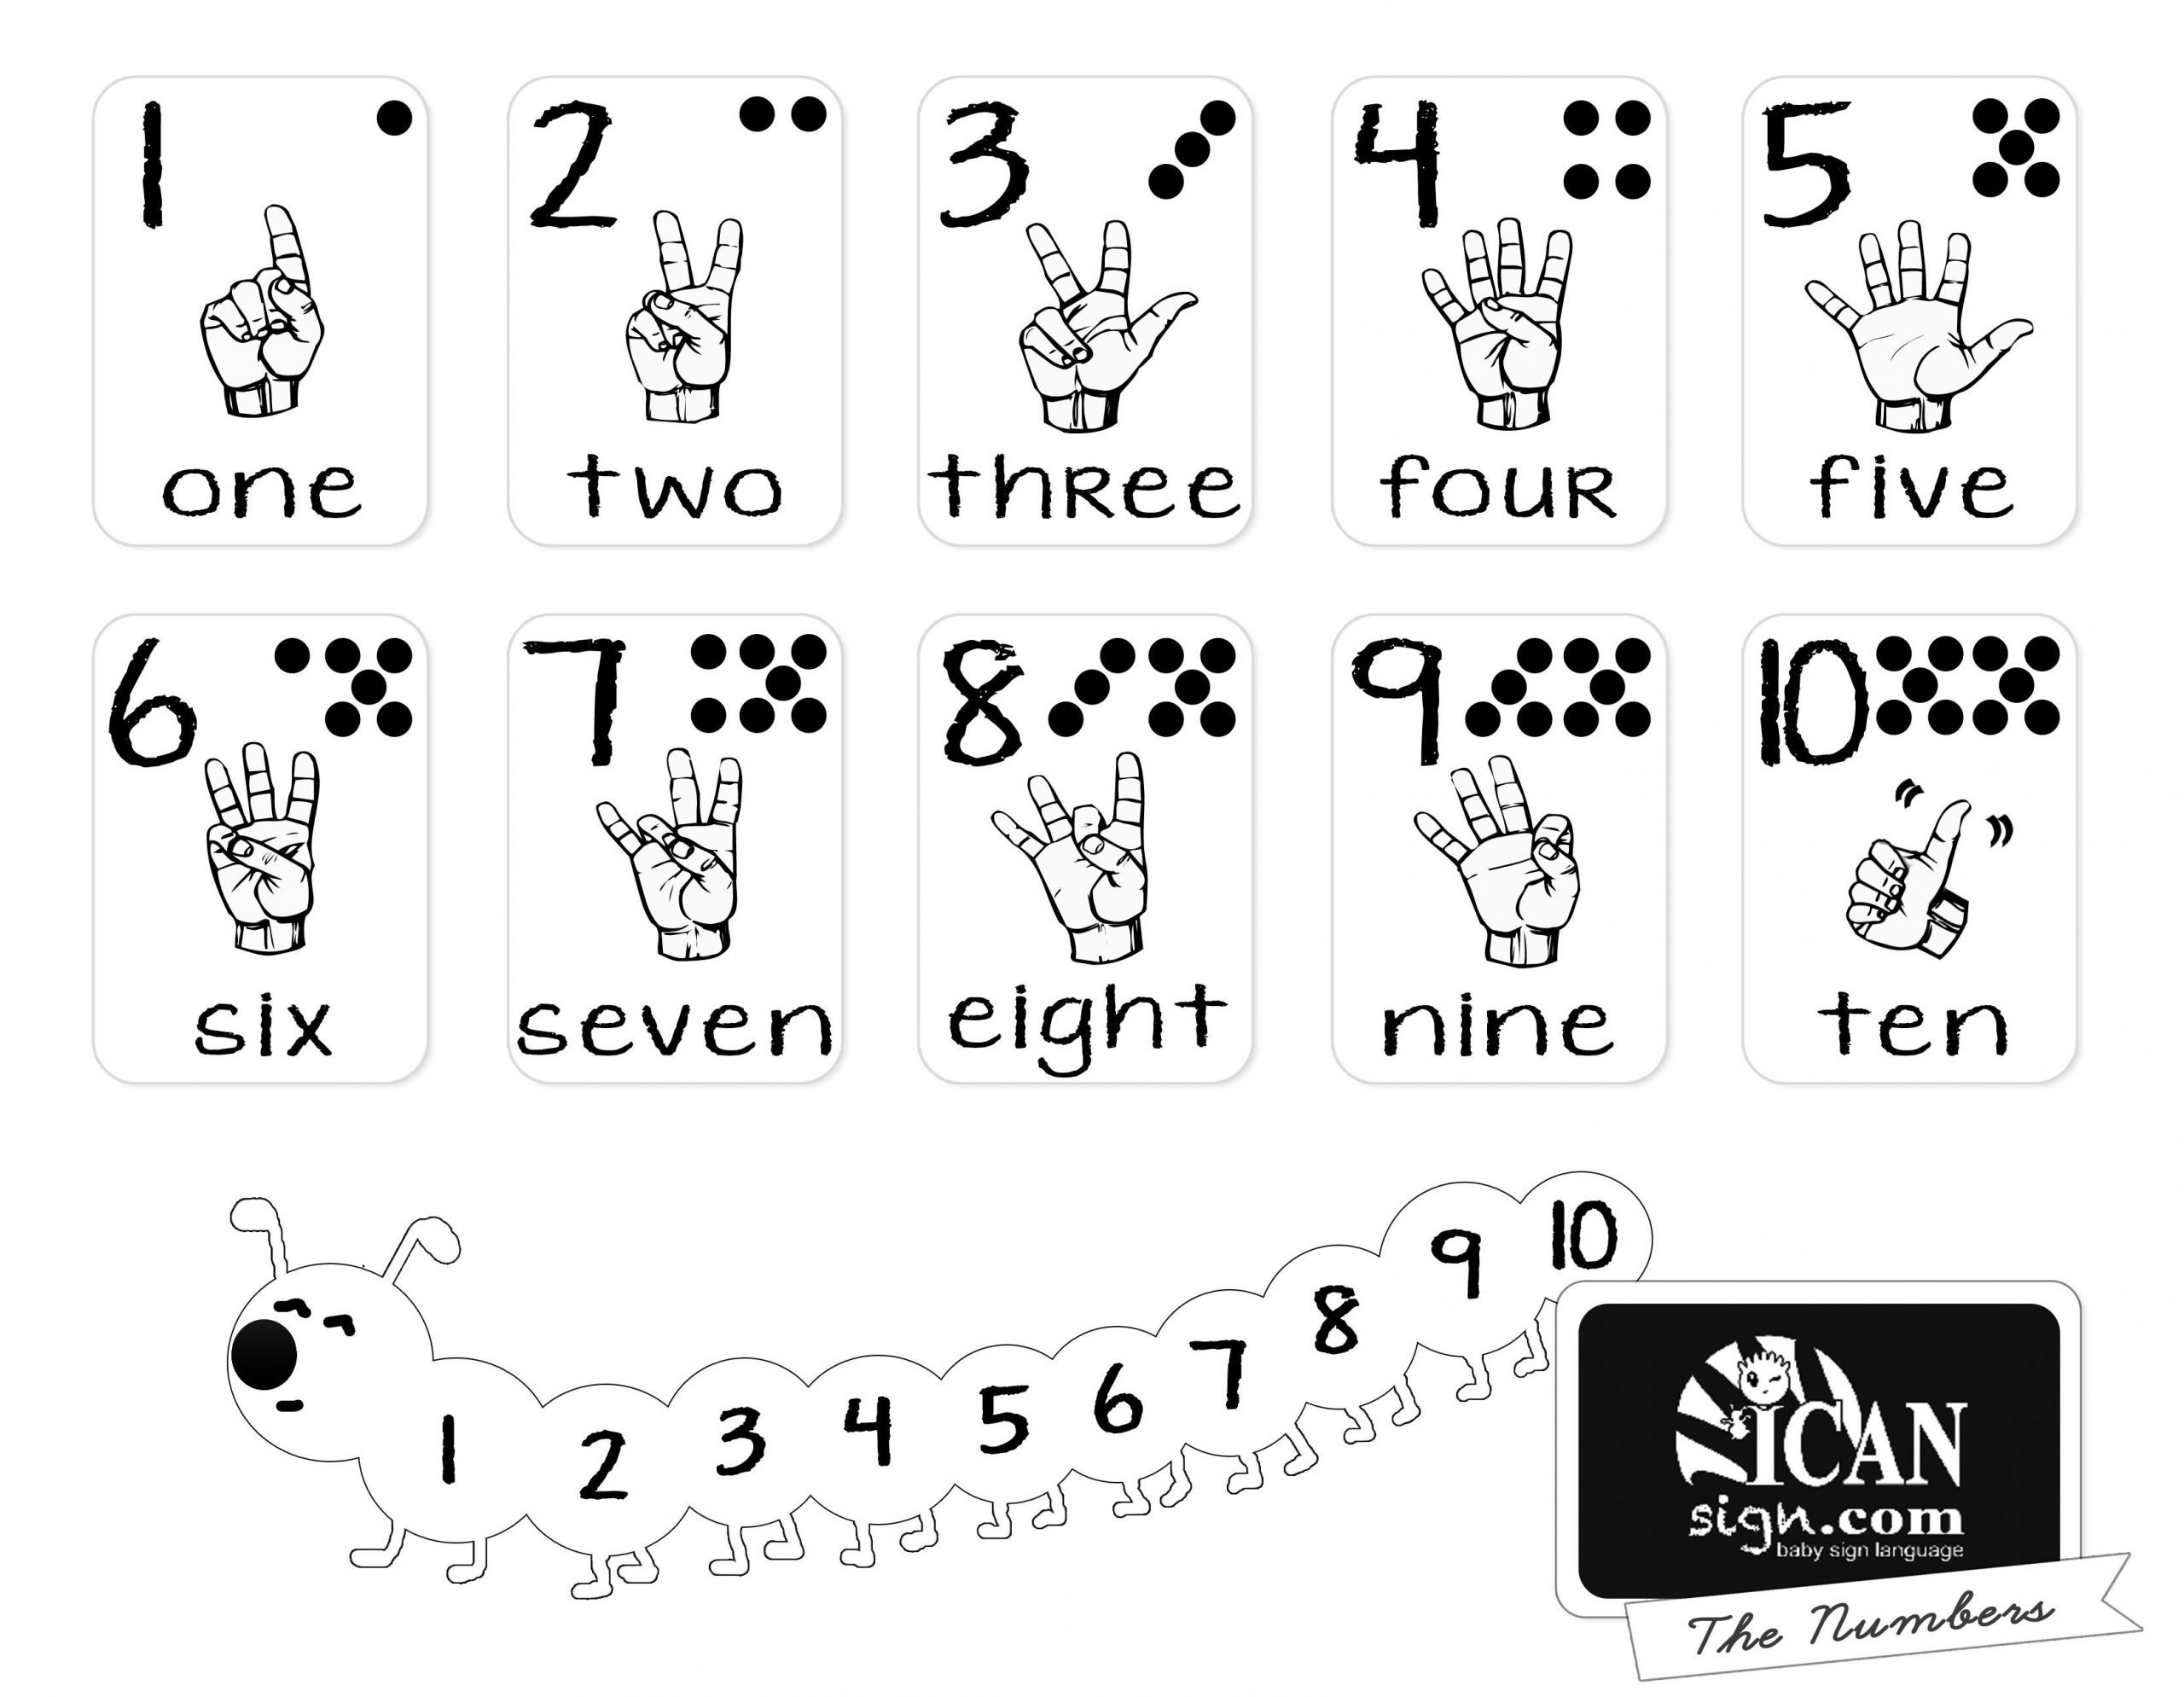 Pin by Sarah McClure on Sign language charts